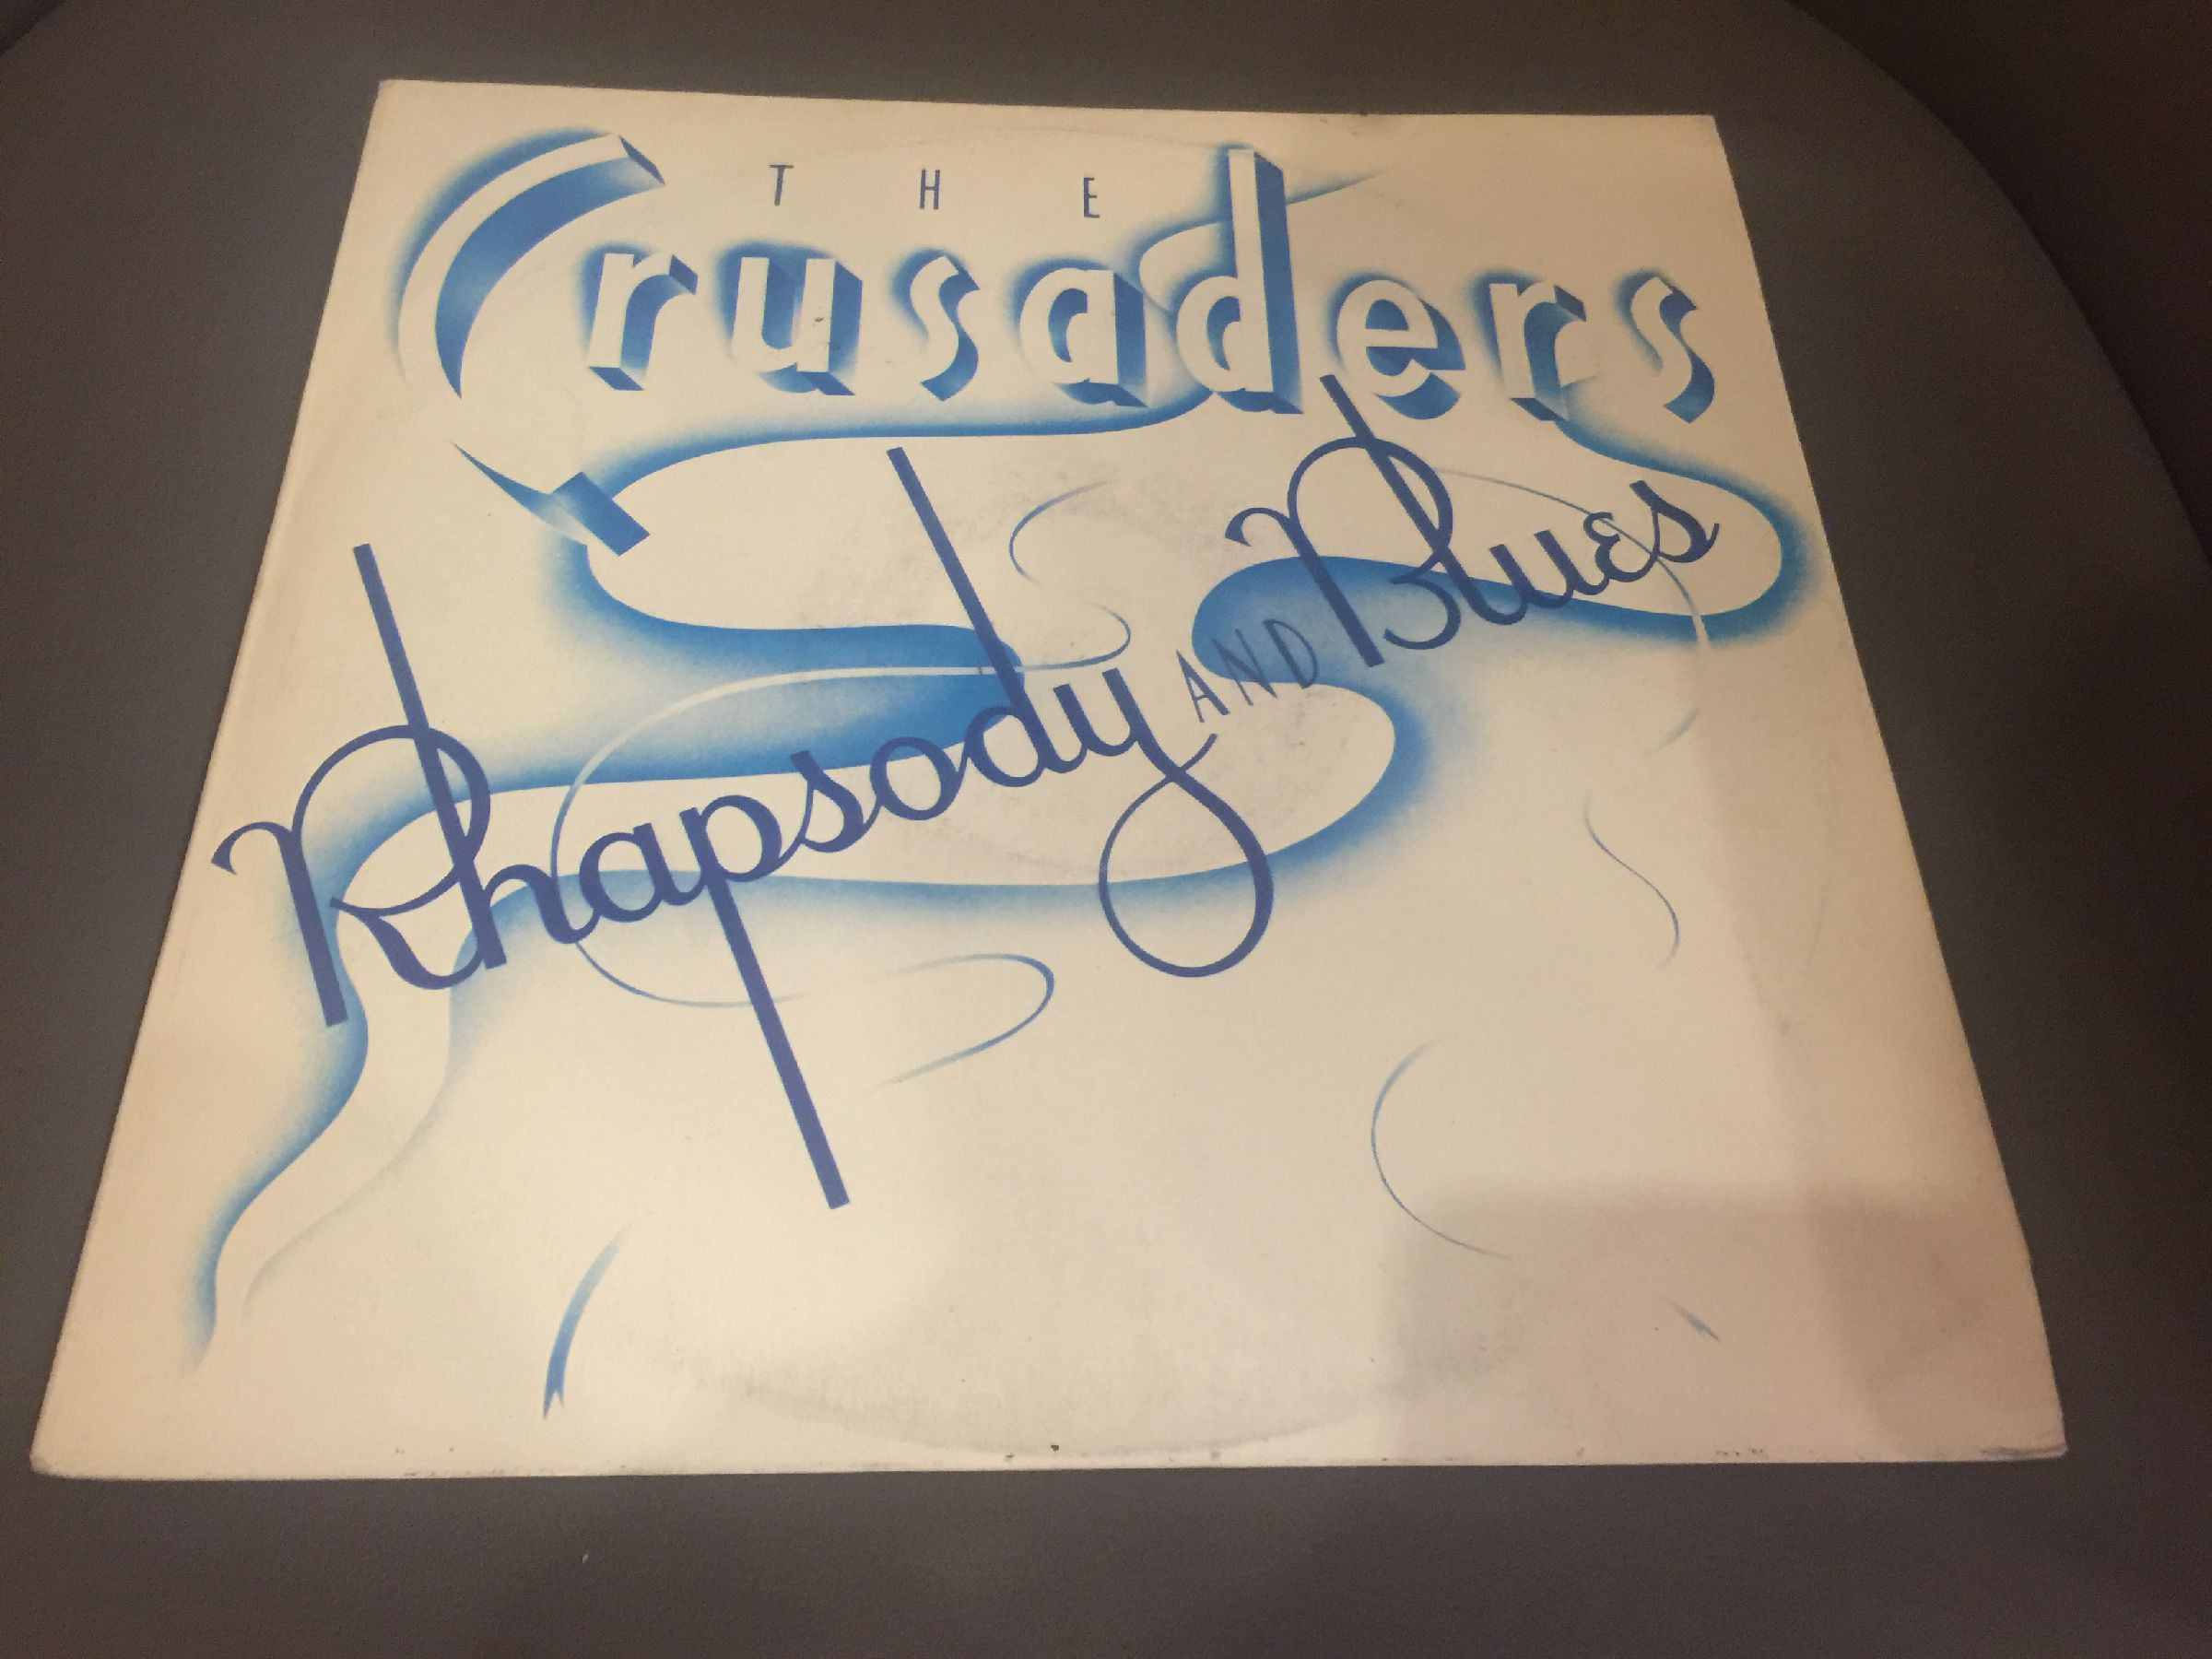 Crusaders Rhapsody And Blues